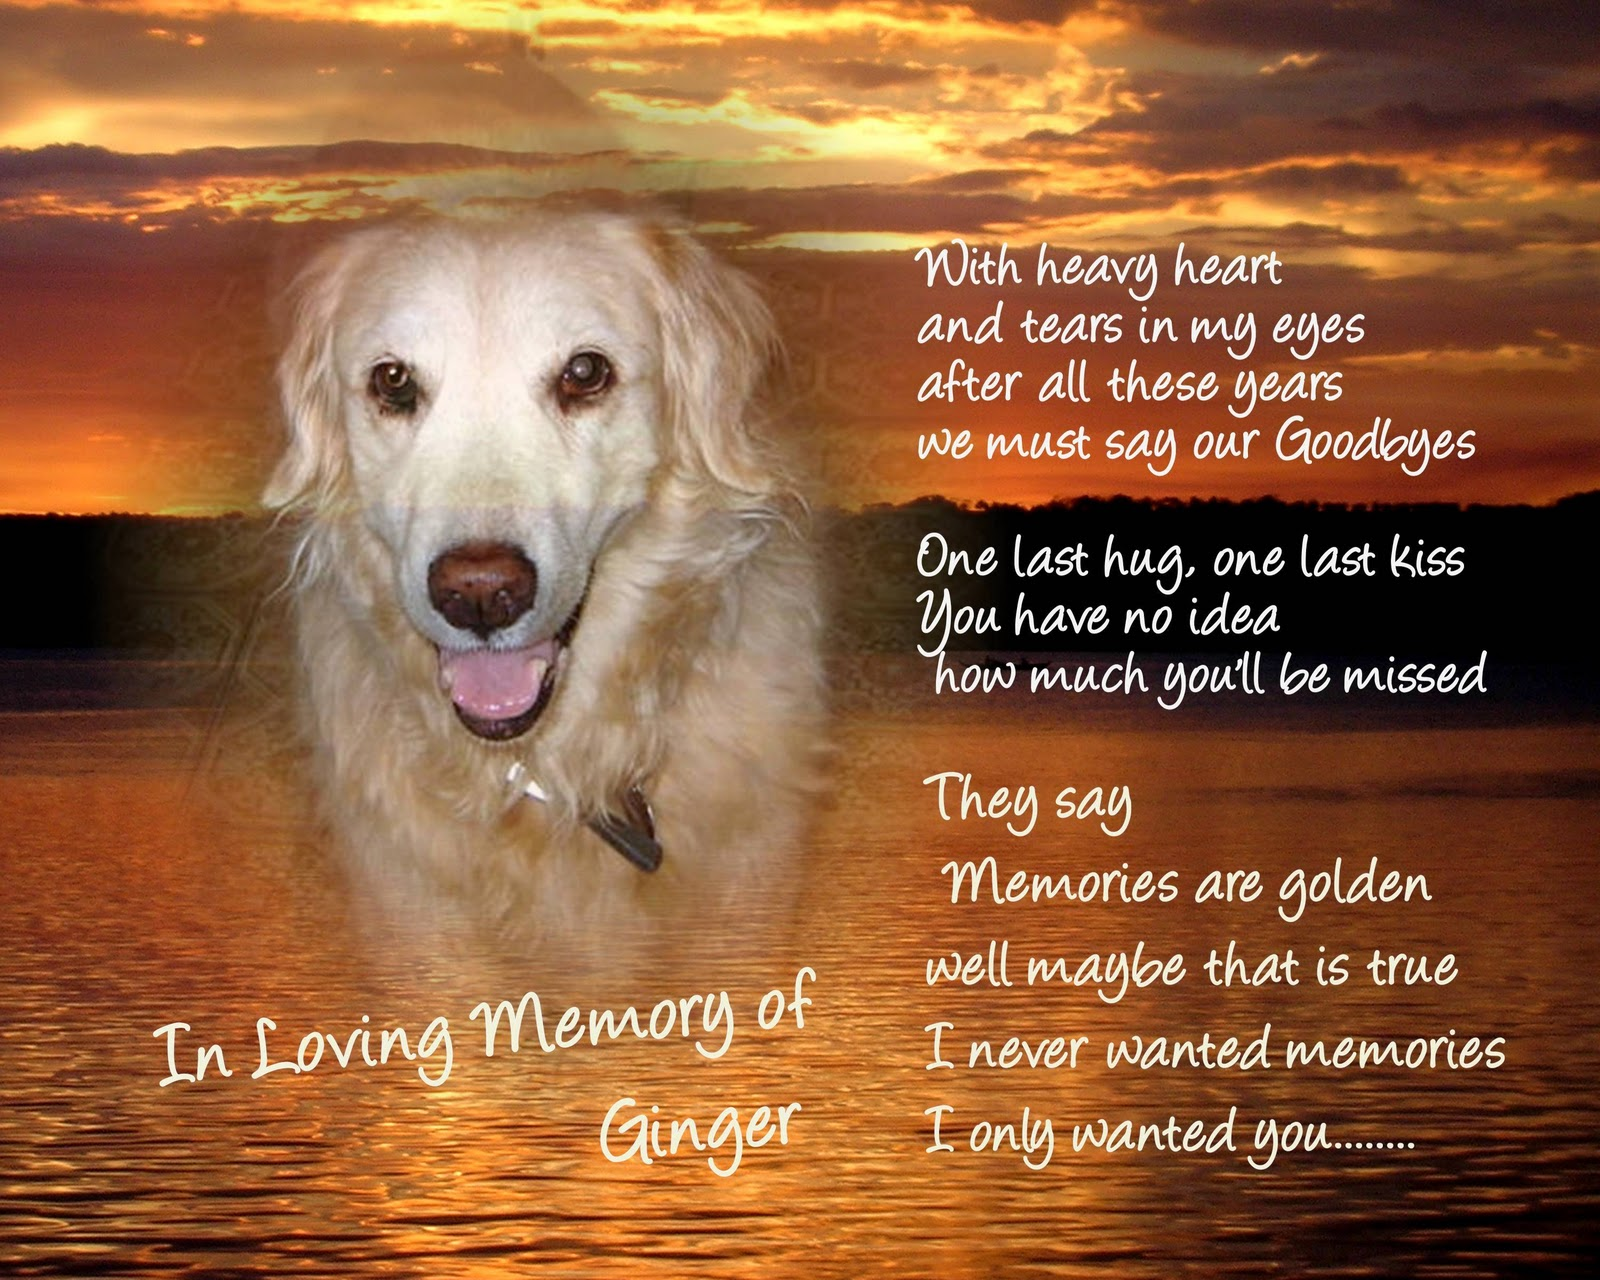 In Loving Memory Sayings And Quotes The Laughing Pet December 2010